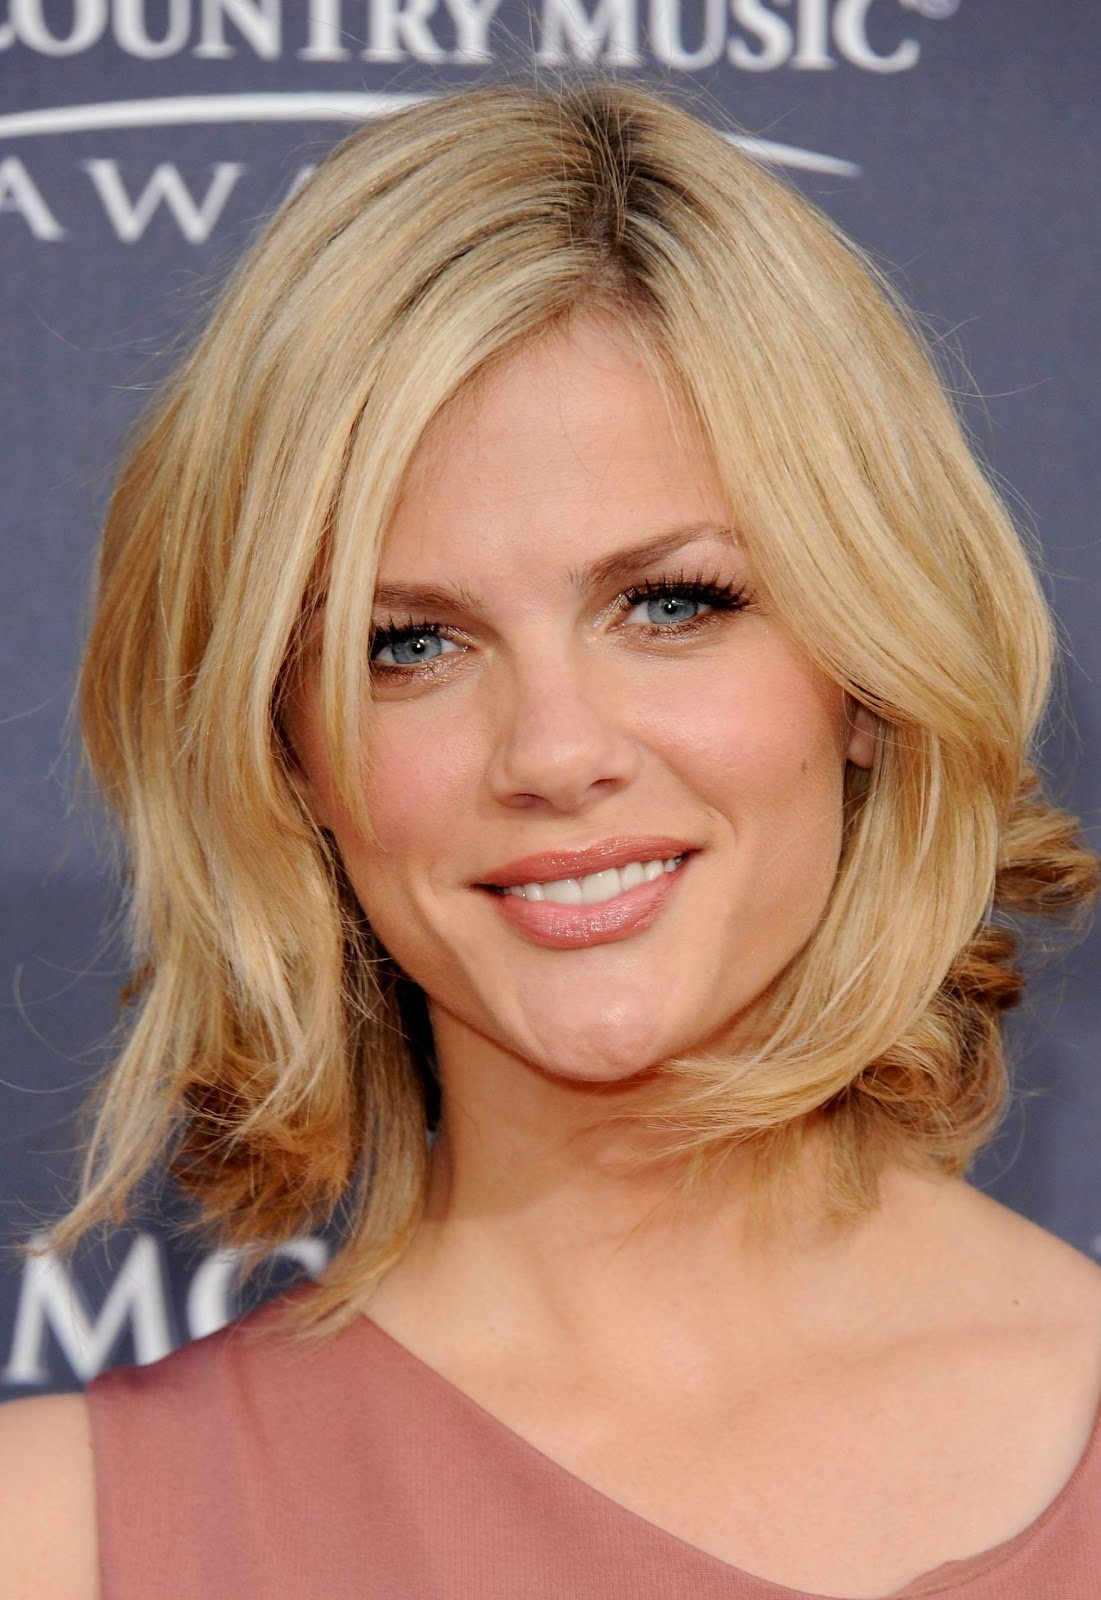 The Best Celebrity Shoulder Length Layered Hairstyles For 2011 Pictures